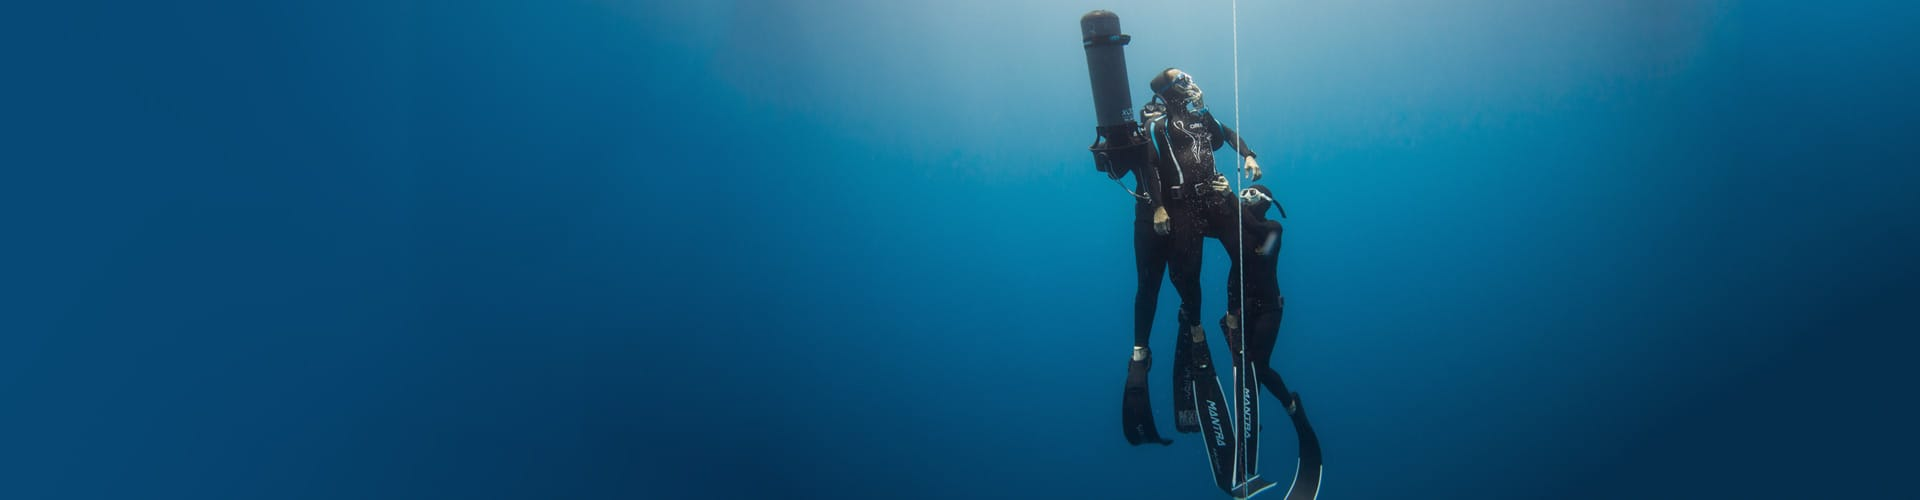 AIDA freediving instructor course